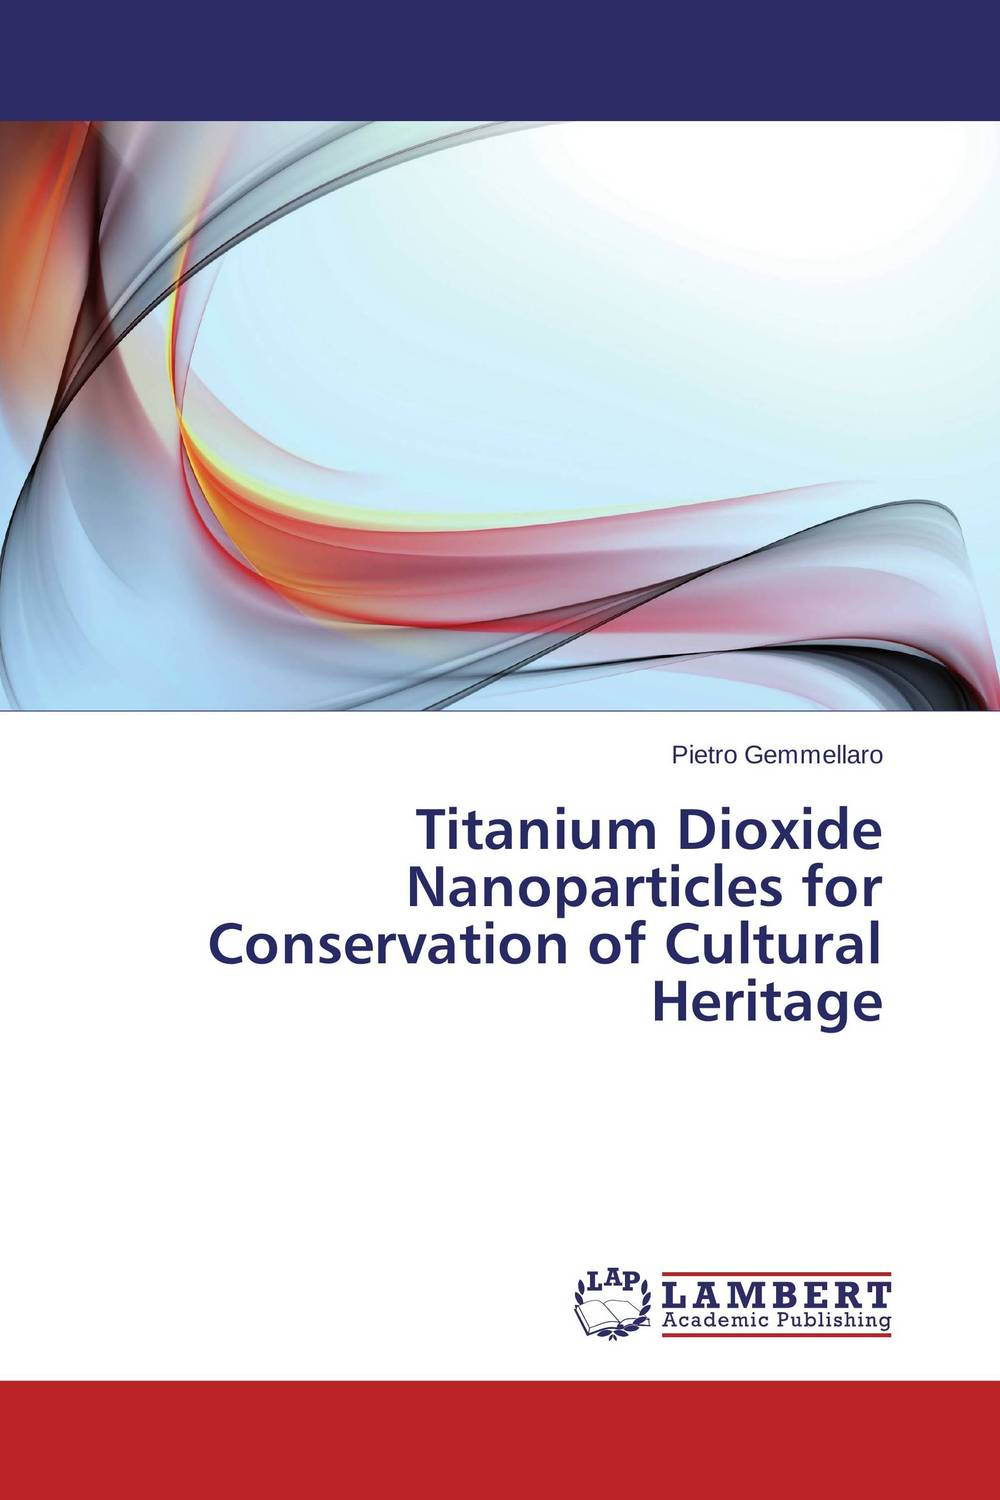 Titanium Dioxide Nanoparticles for Conservation of Cultural Heritage the role of heritage conservation districts